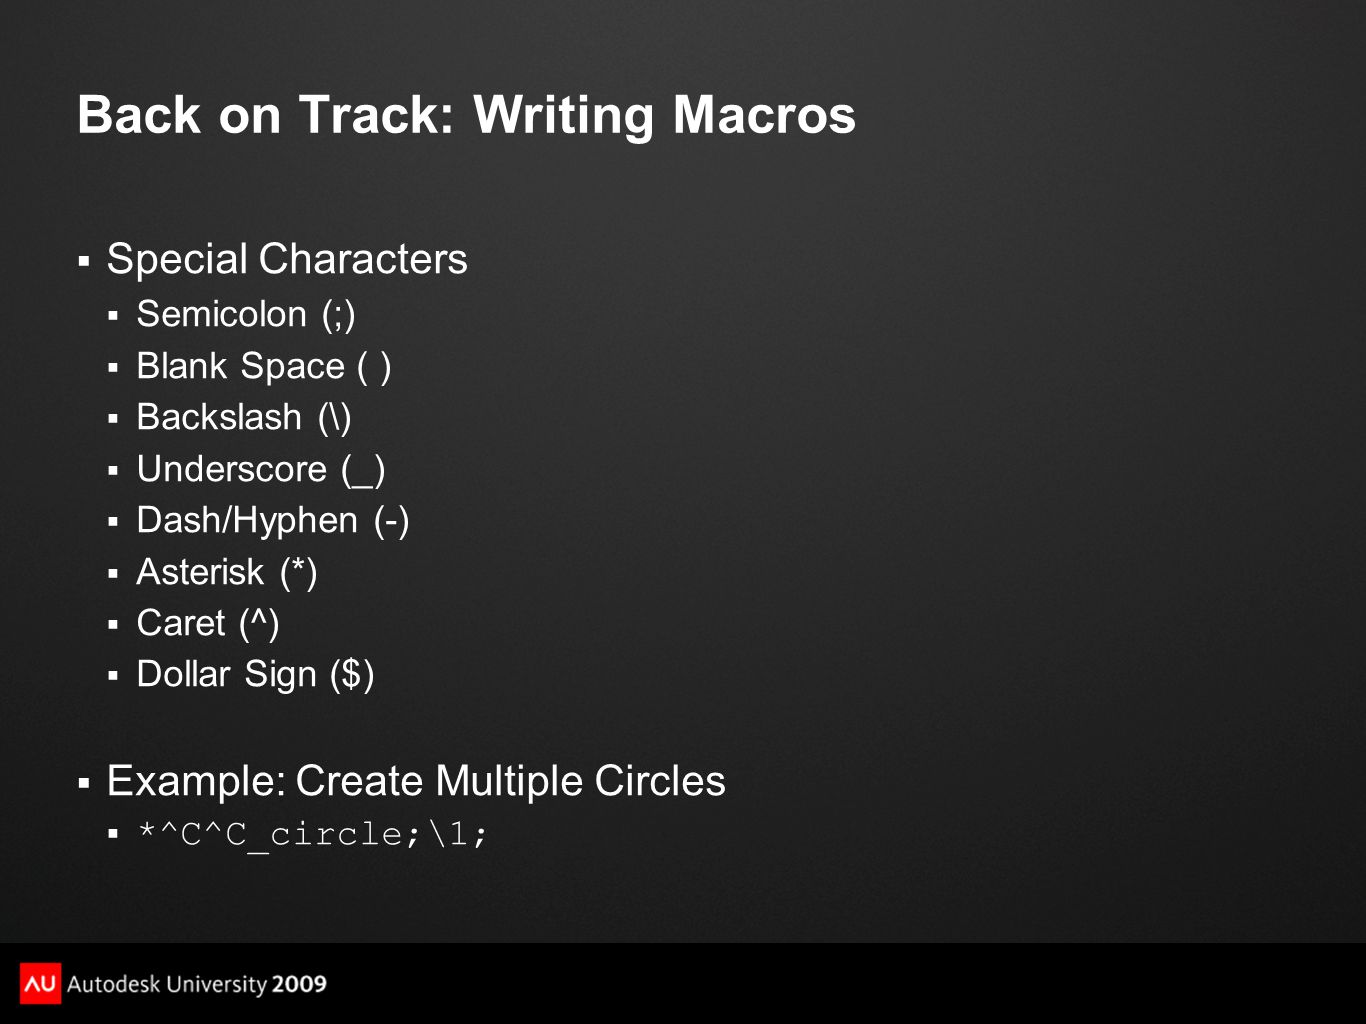 Back on Track: Writing Macros  Special Characters  Semicolon (;)  Blank Space ( )  Backslash (\)  Underscore (_)  Dash/Hyphen (-)  Asterisk (*)